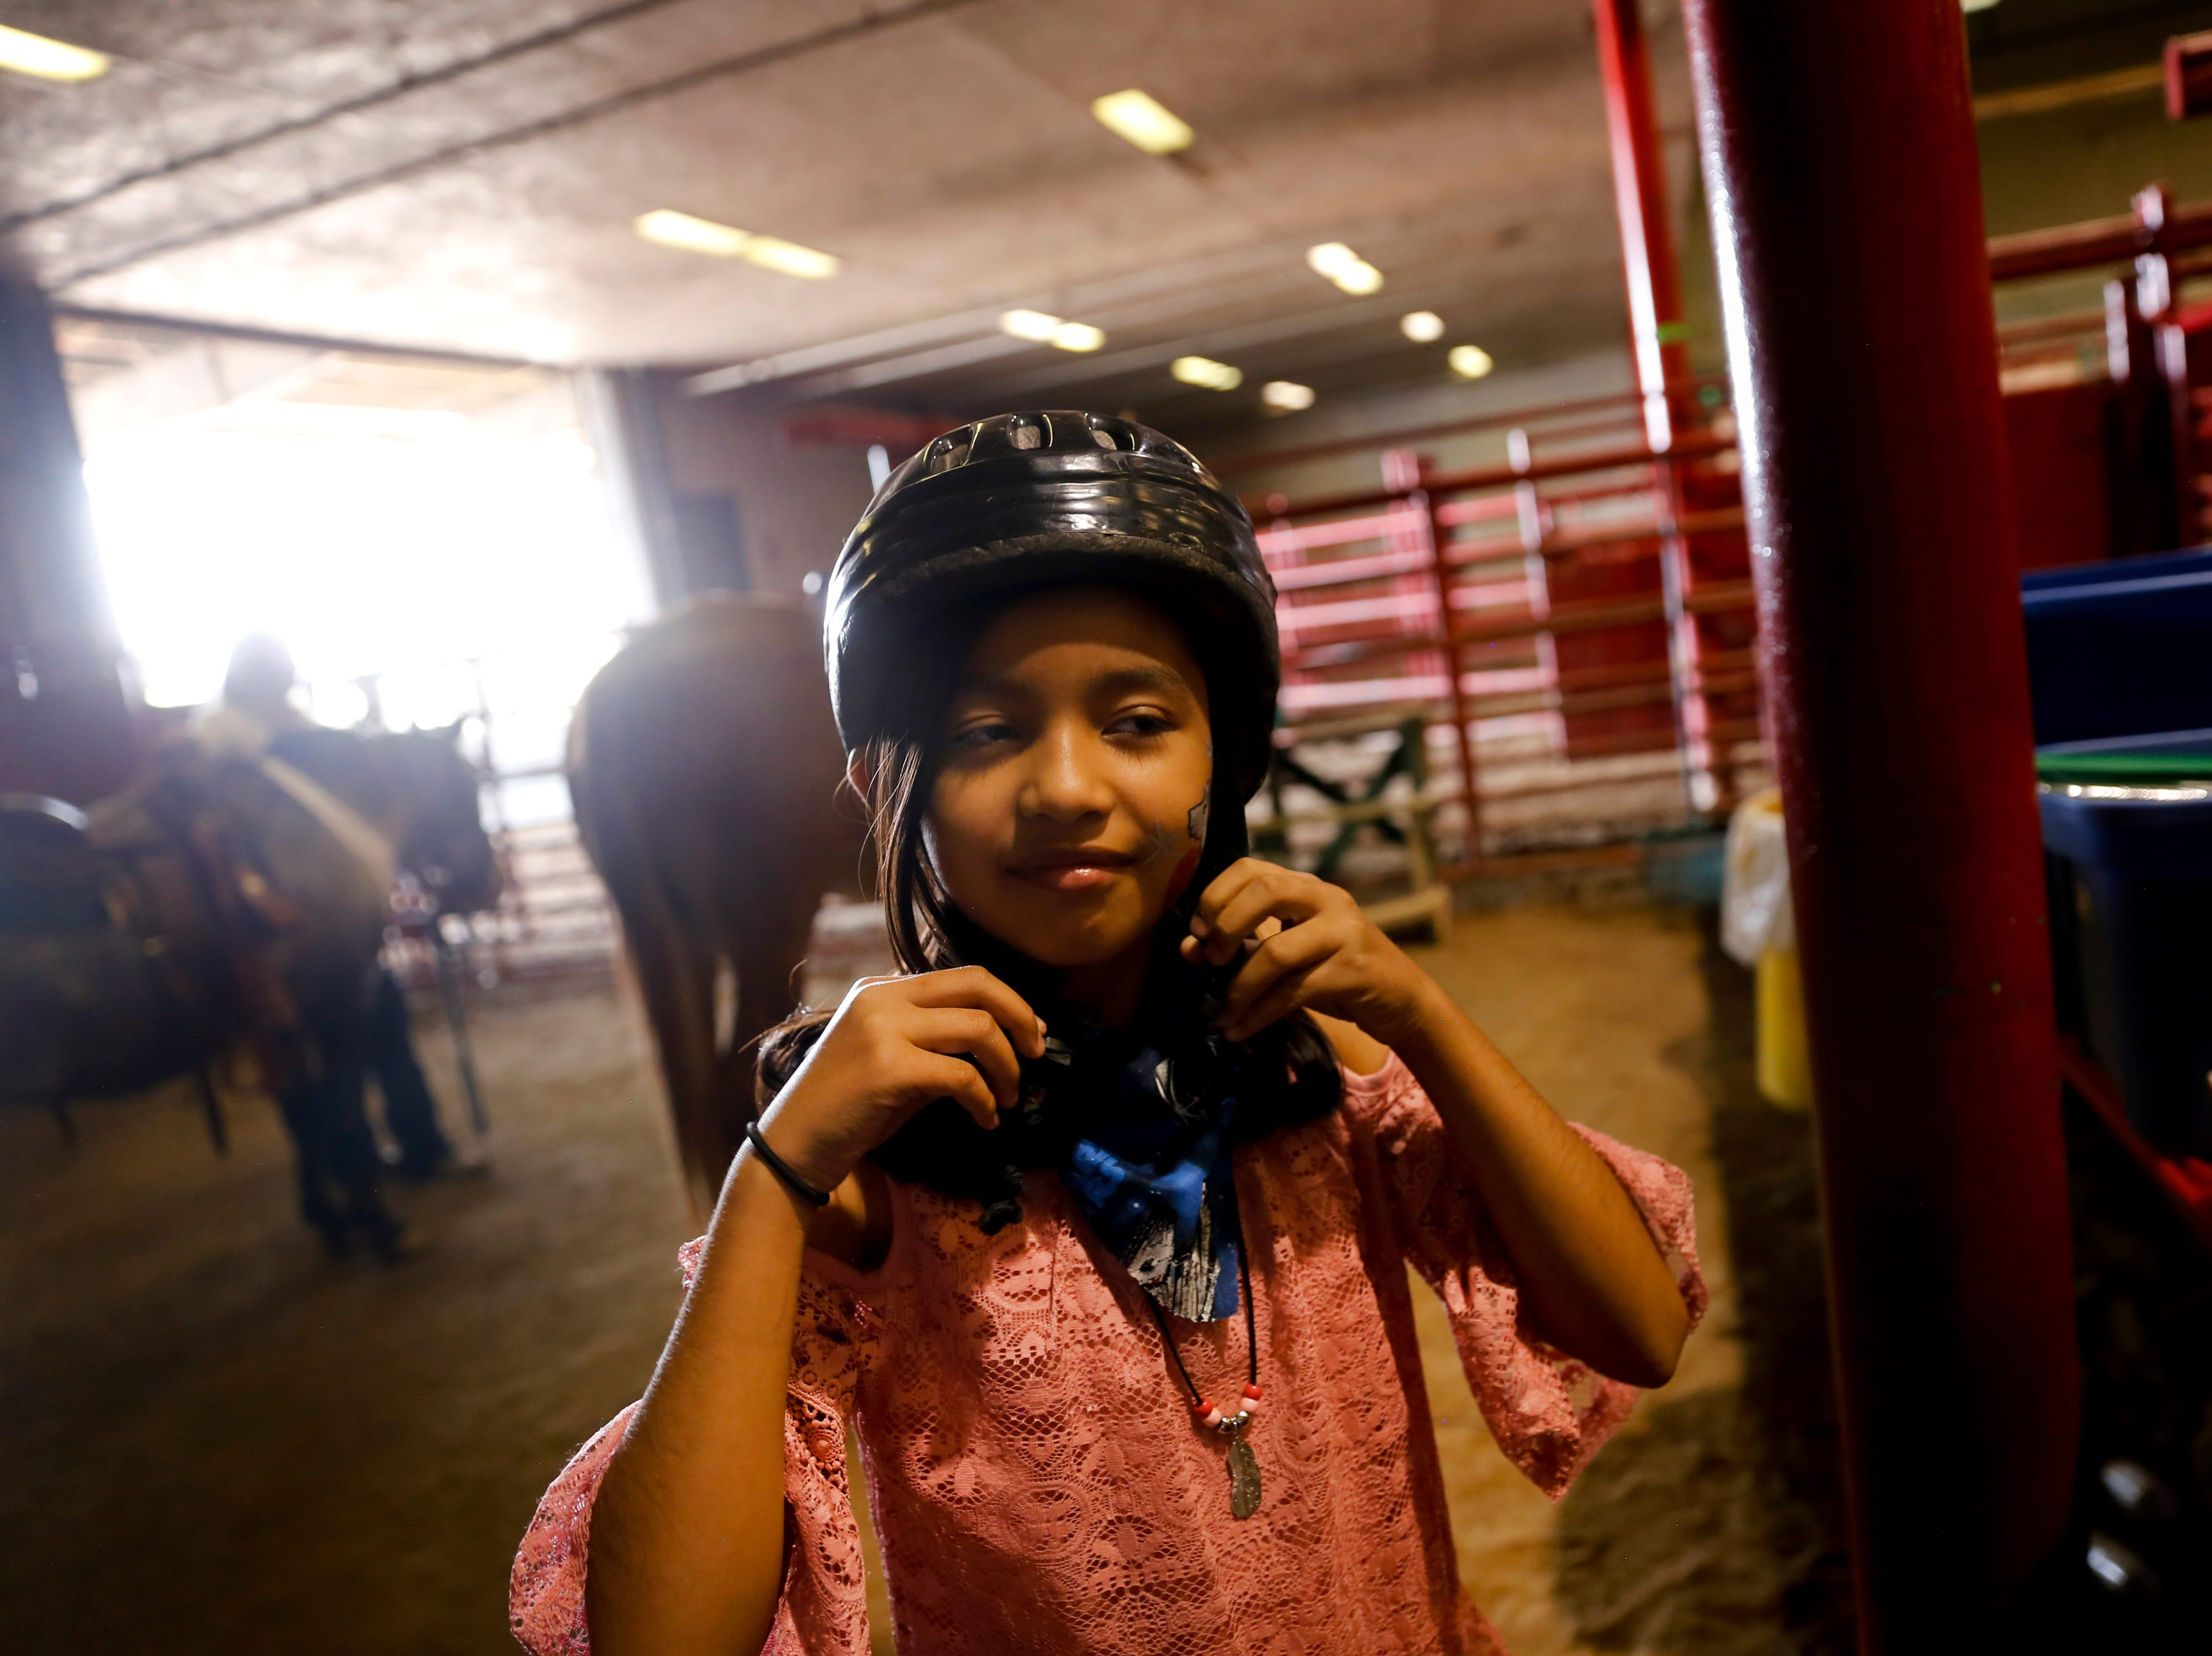 Kyana Perez, puts on her helmet, Wednesday, Aug. 15. 2018 during an equestrian show for people with  disabilities at the San Juan County Fair in Memorial Coliseum at McGee Park in Farmington